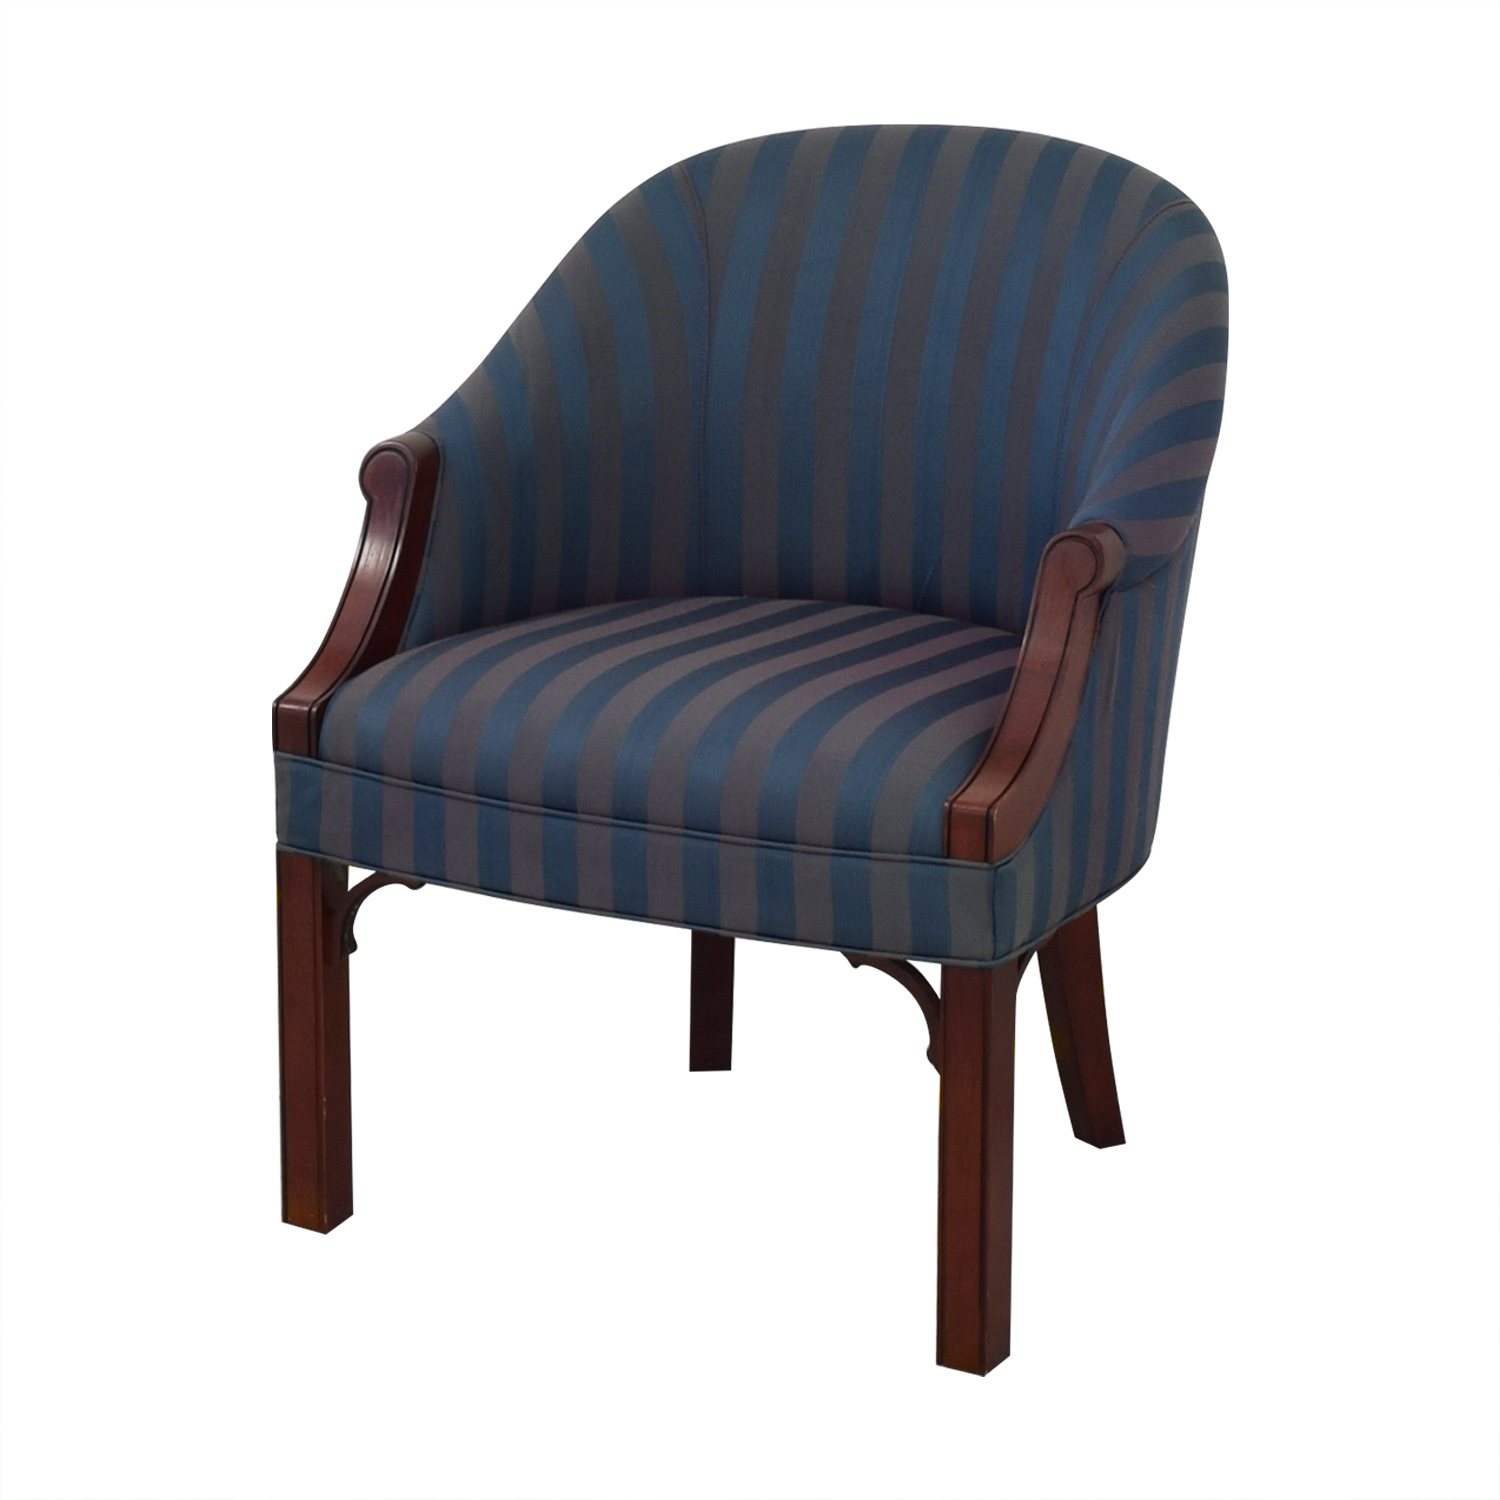 Kimball Kimball Independence Newcastle Chair for sale